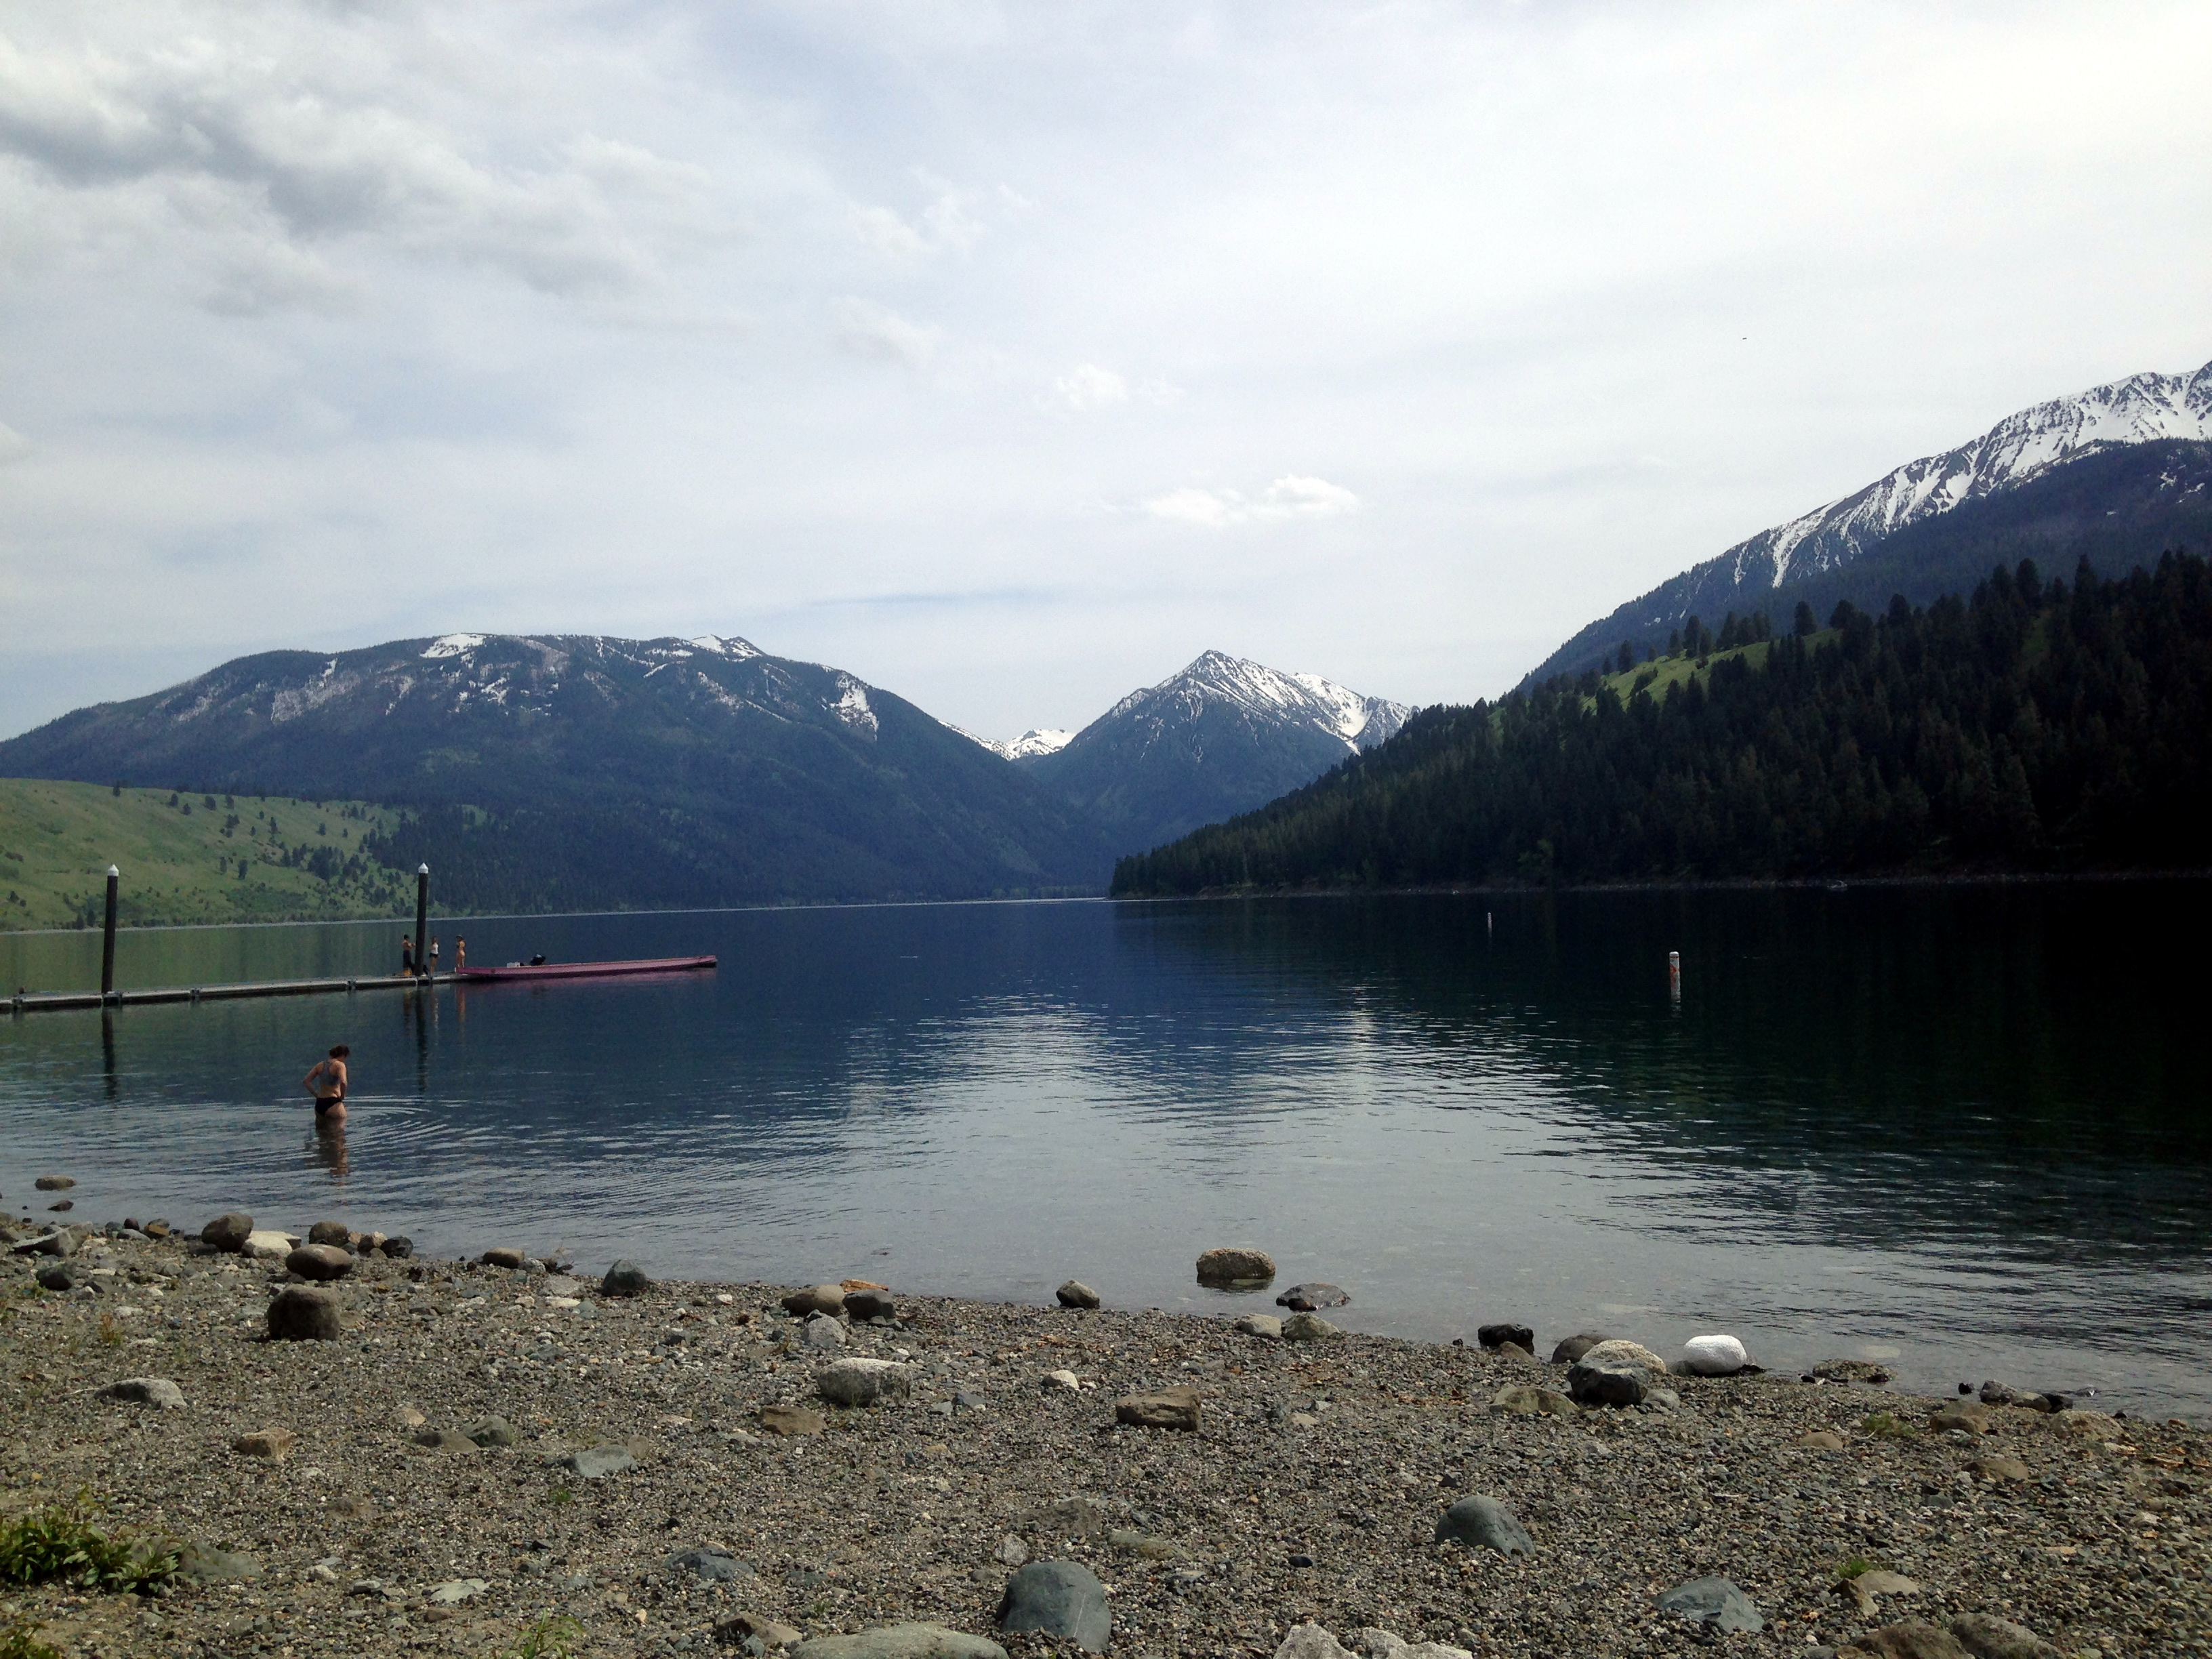 Wallowa Lake photo by Carrie Uffindell